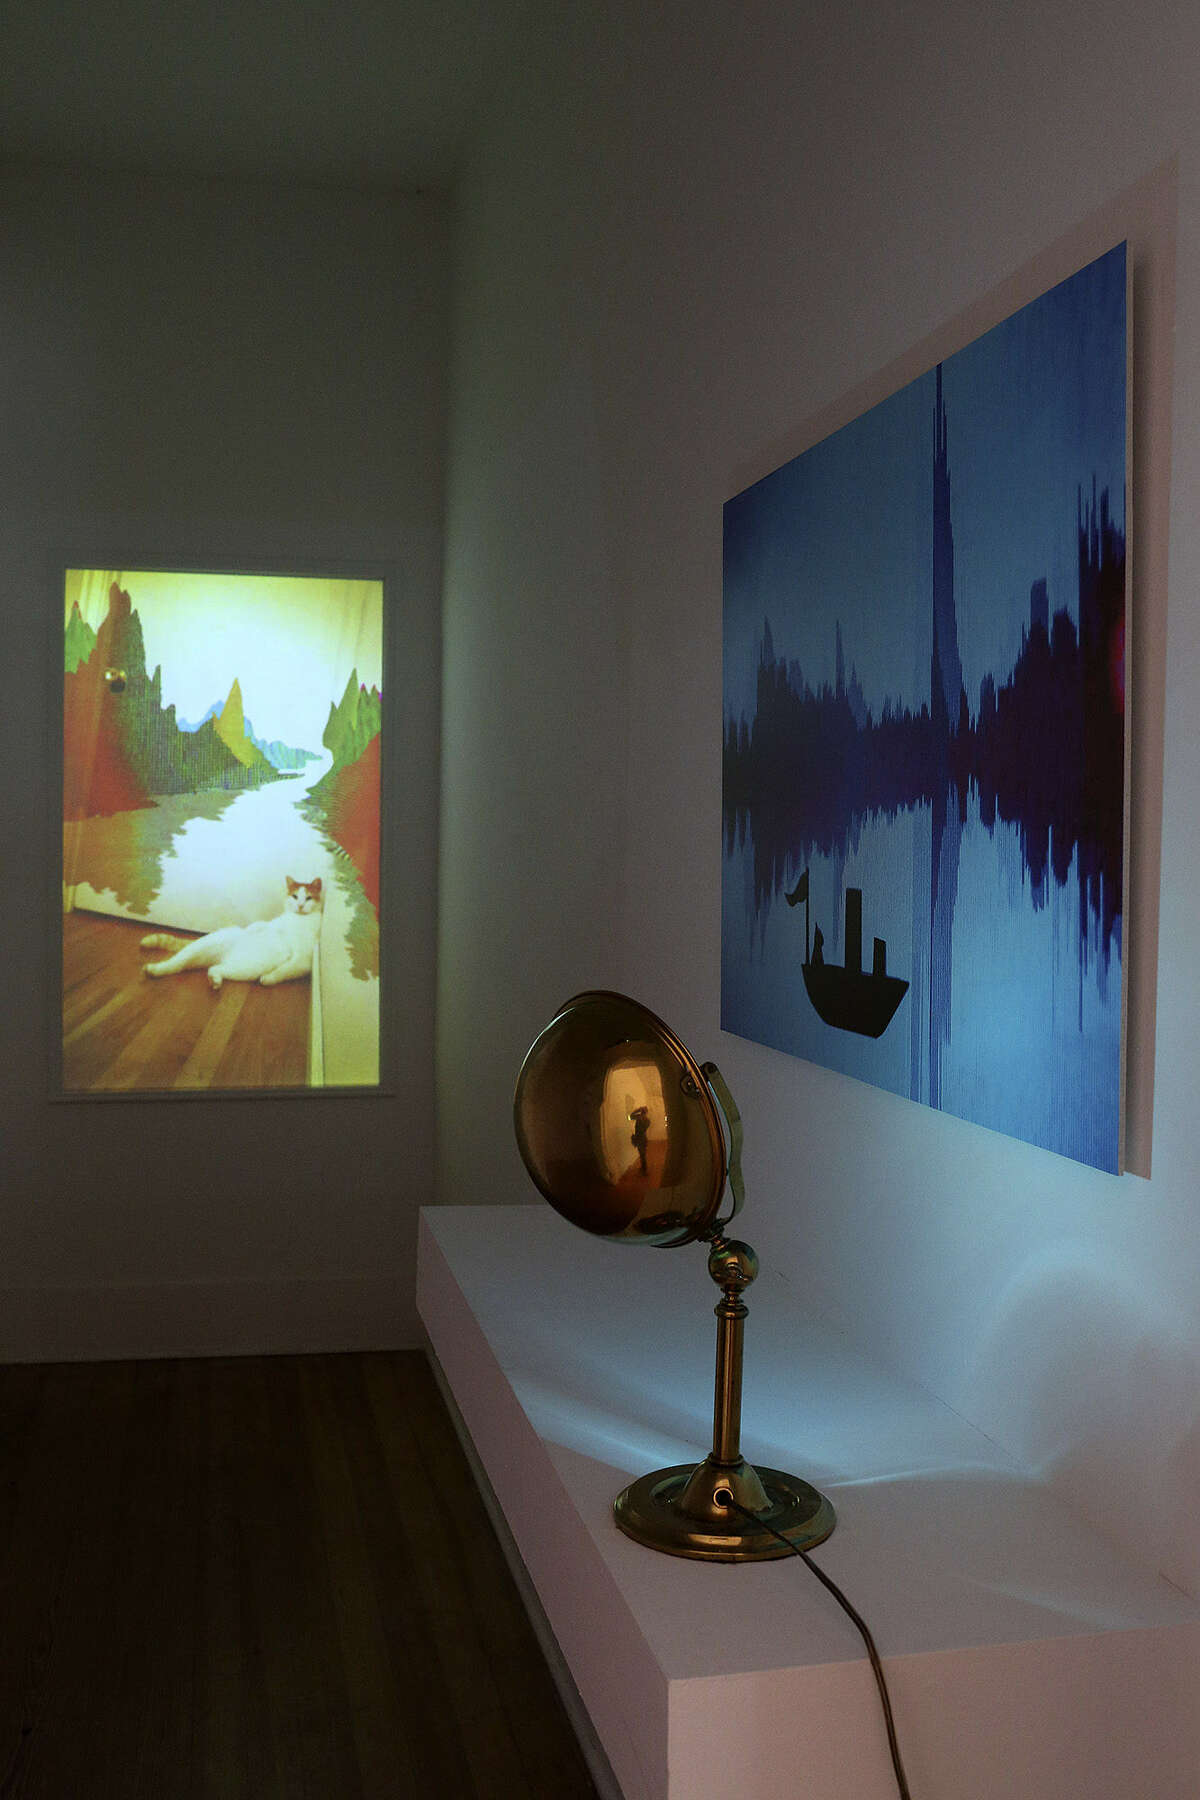 Kate Terrell's exhibit was awarded a Through the Looking Glass award.